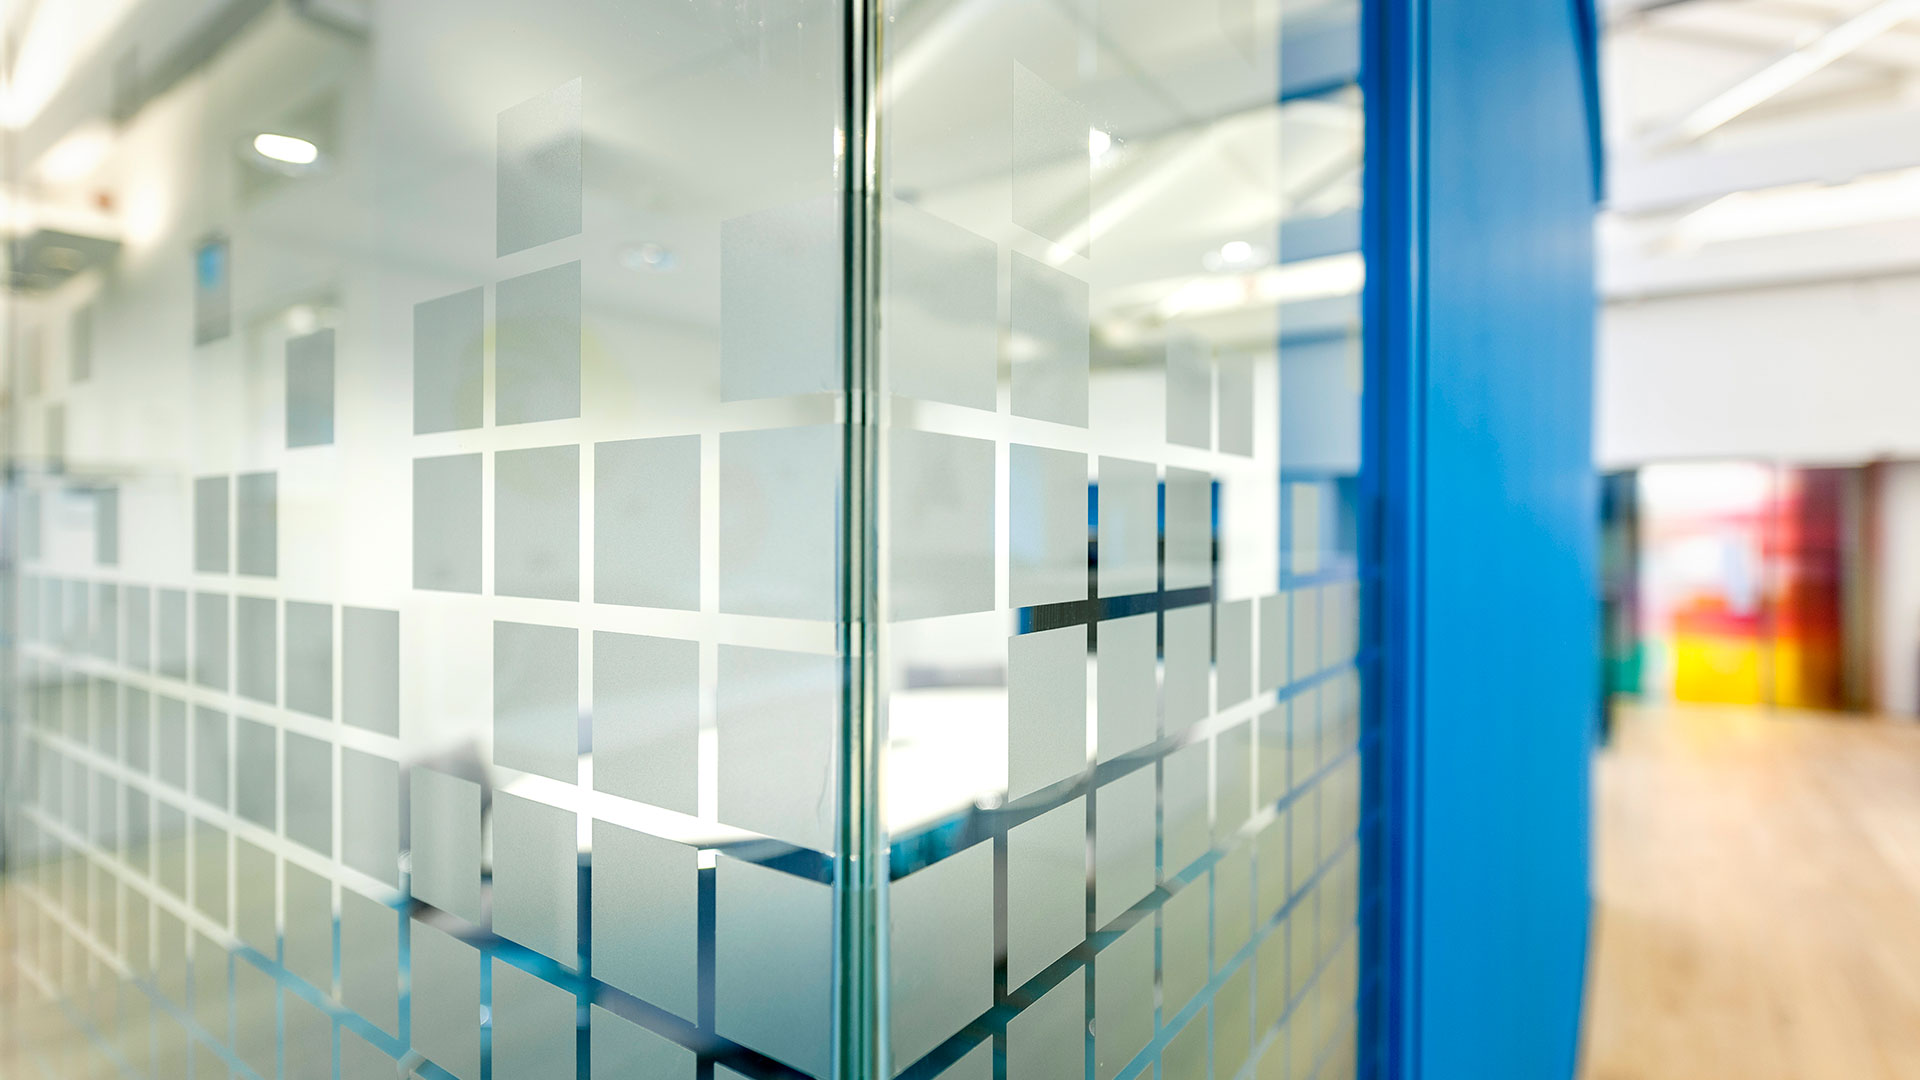 Brightsolid interior glass walls